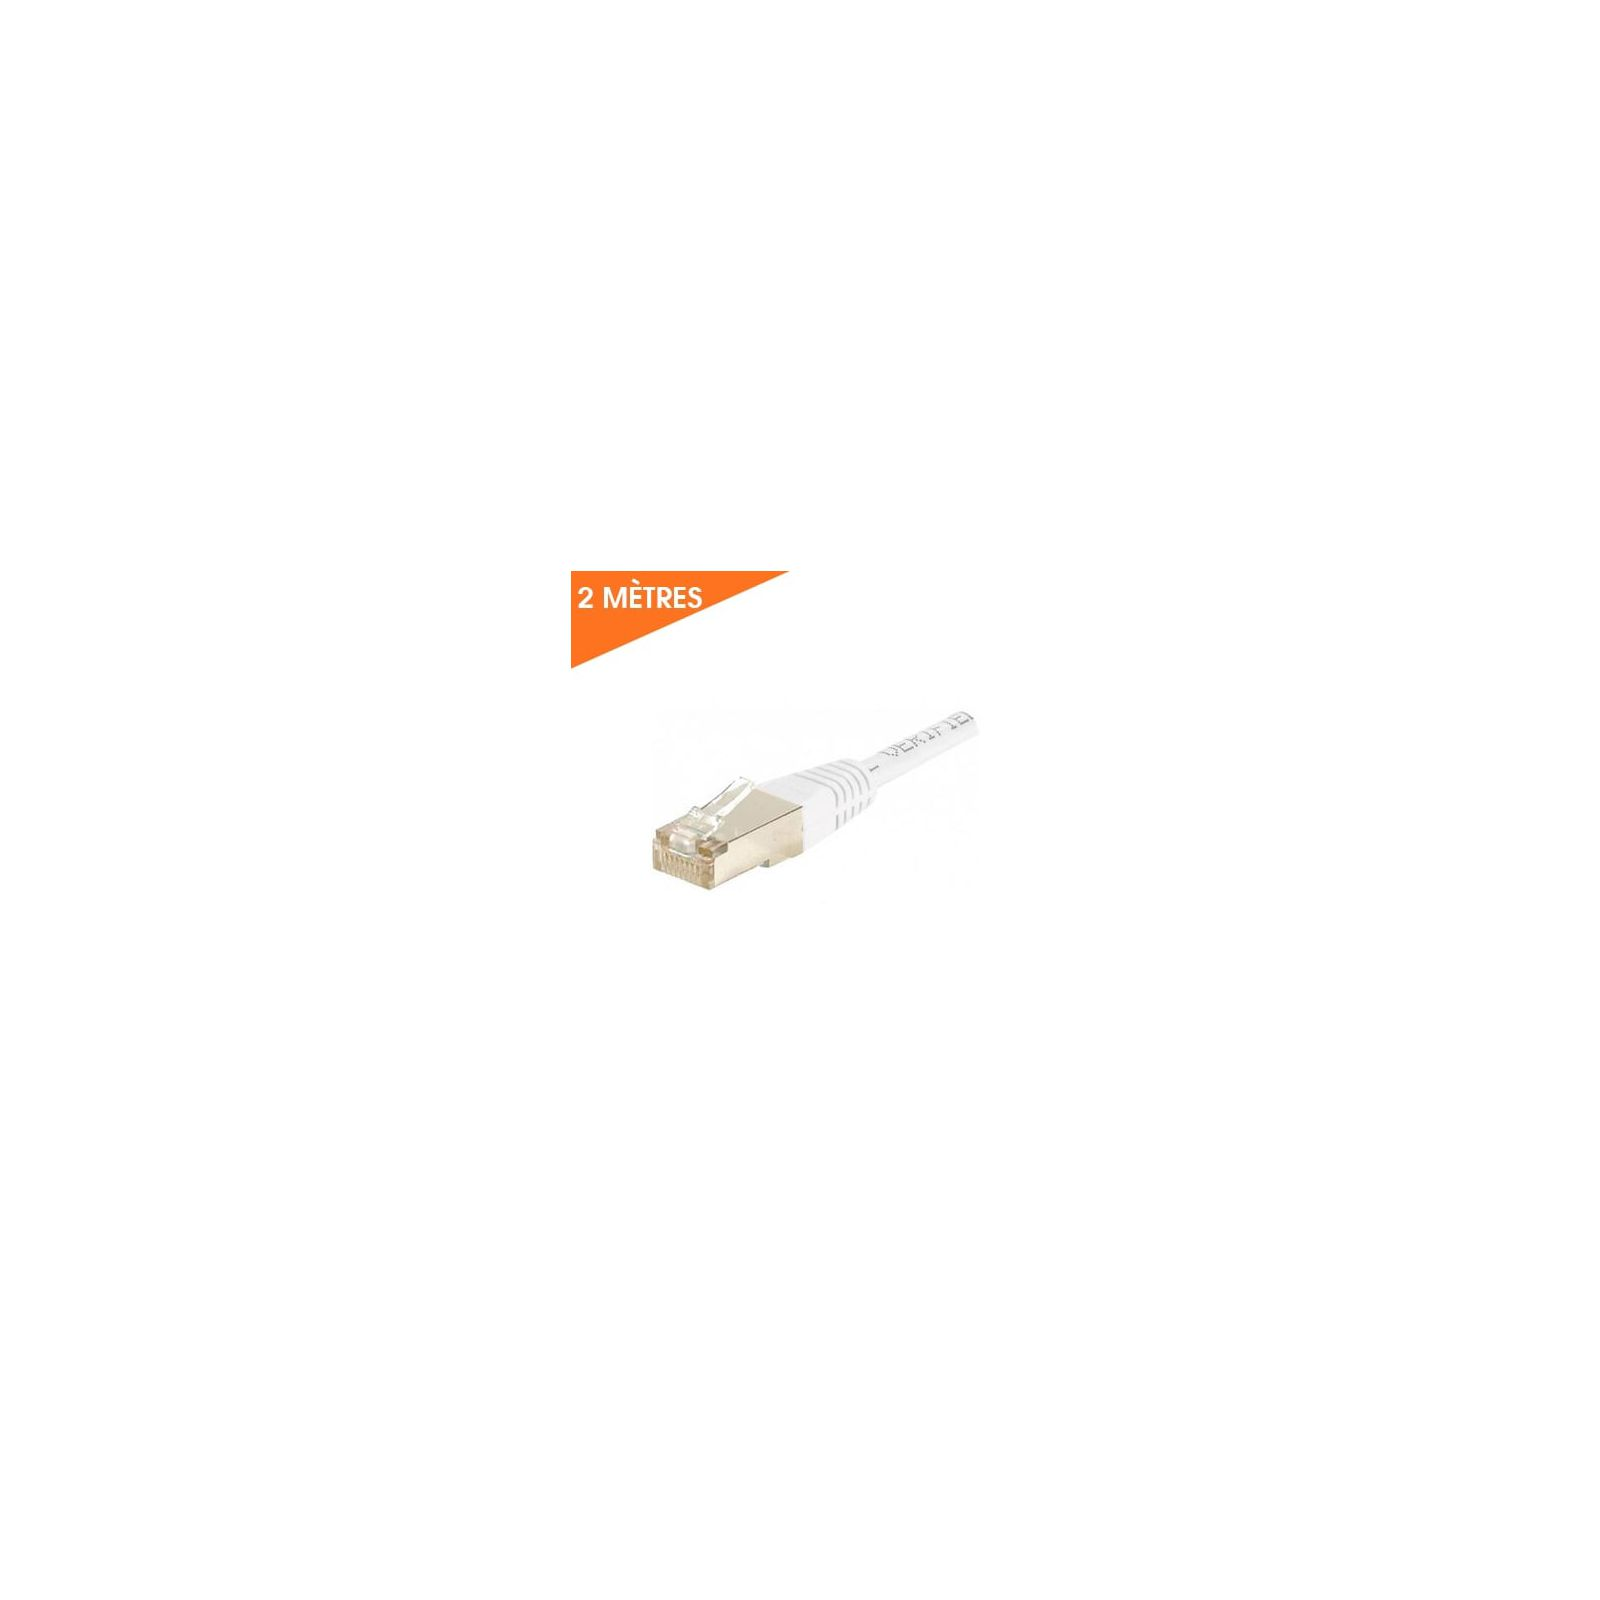 CÂBLE ETHERNET RJ45 CAT 6 2M